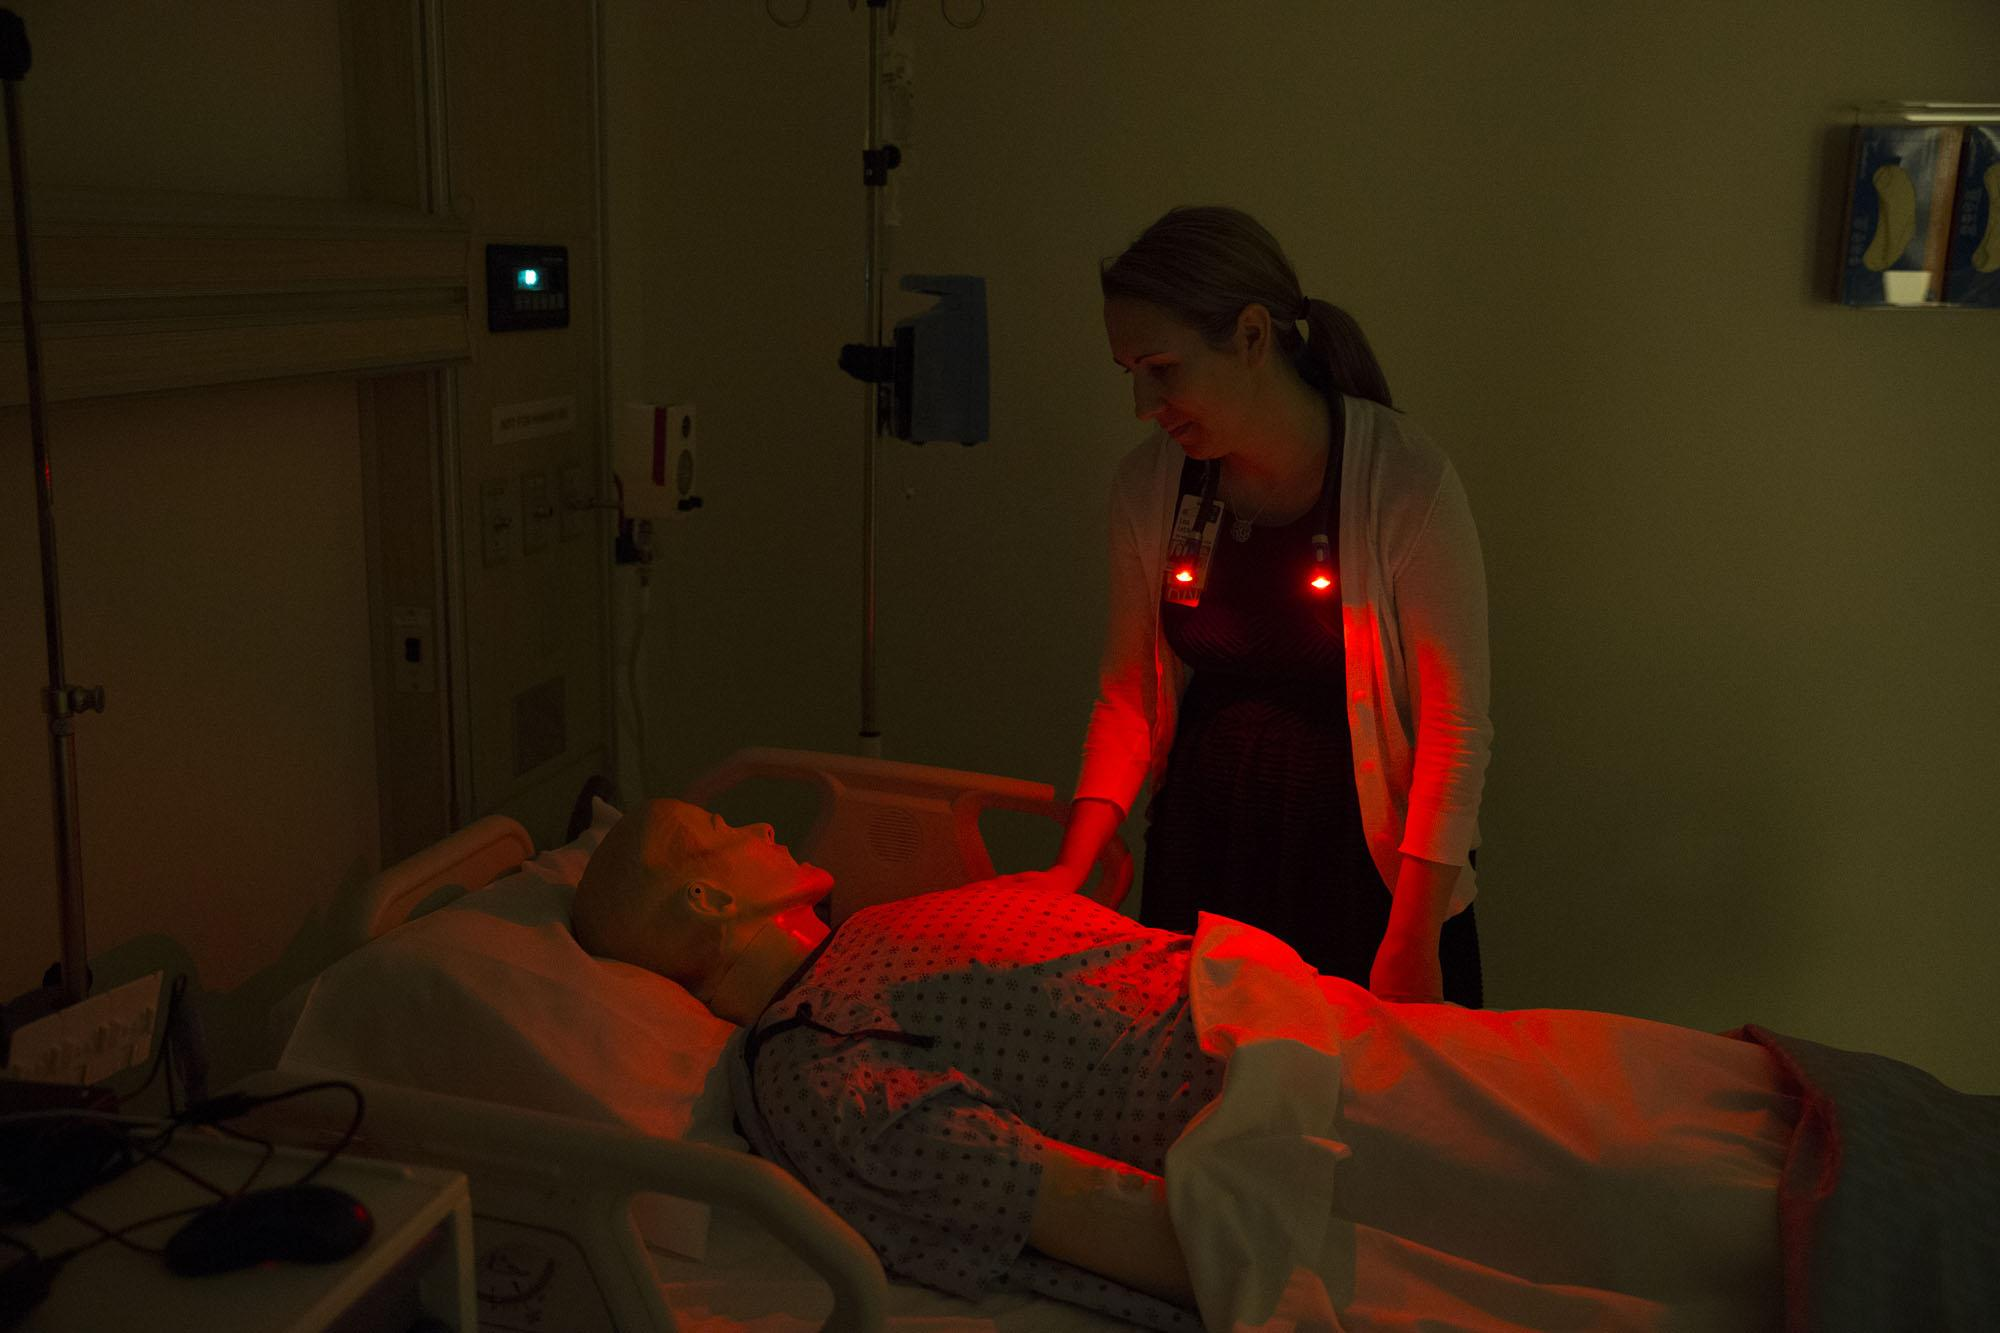 Lisa Letzkus A Doct Nursing Student At The University Of Virginia Thinks That Her Novel Red Light Intervention May Enable Patients To Get More